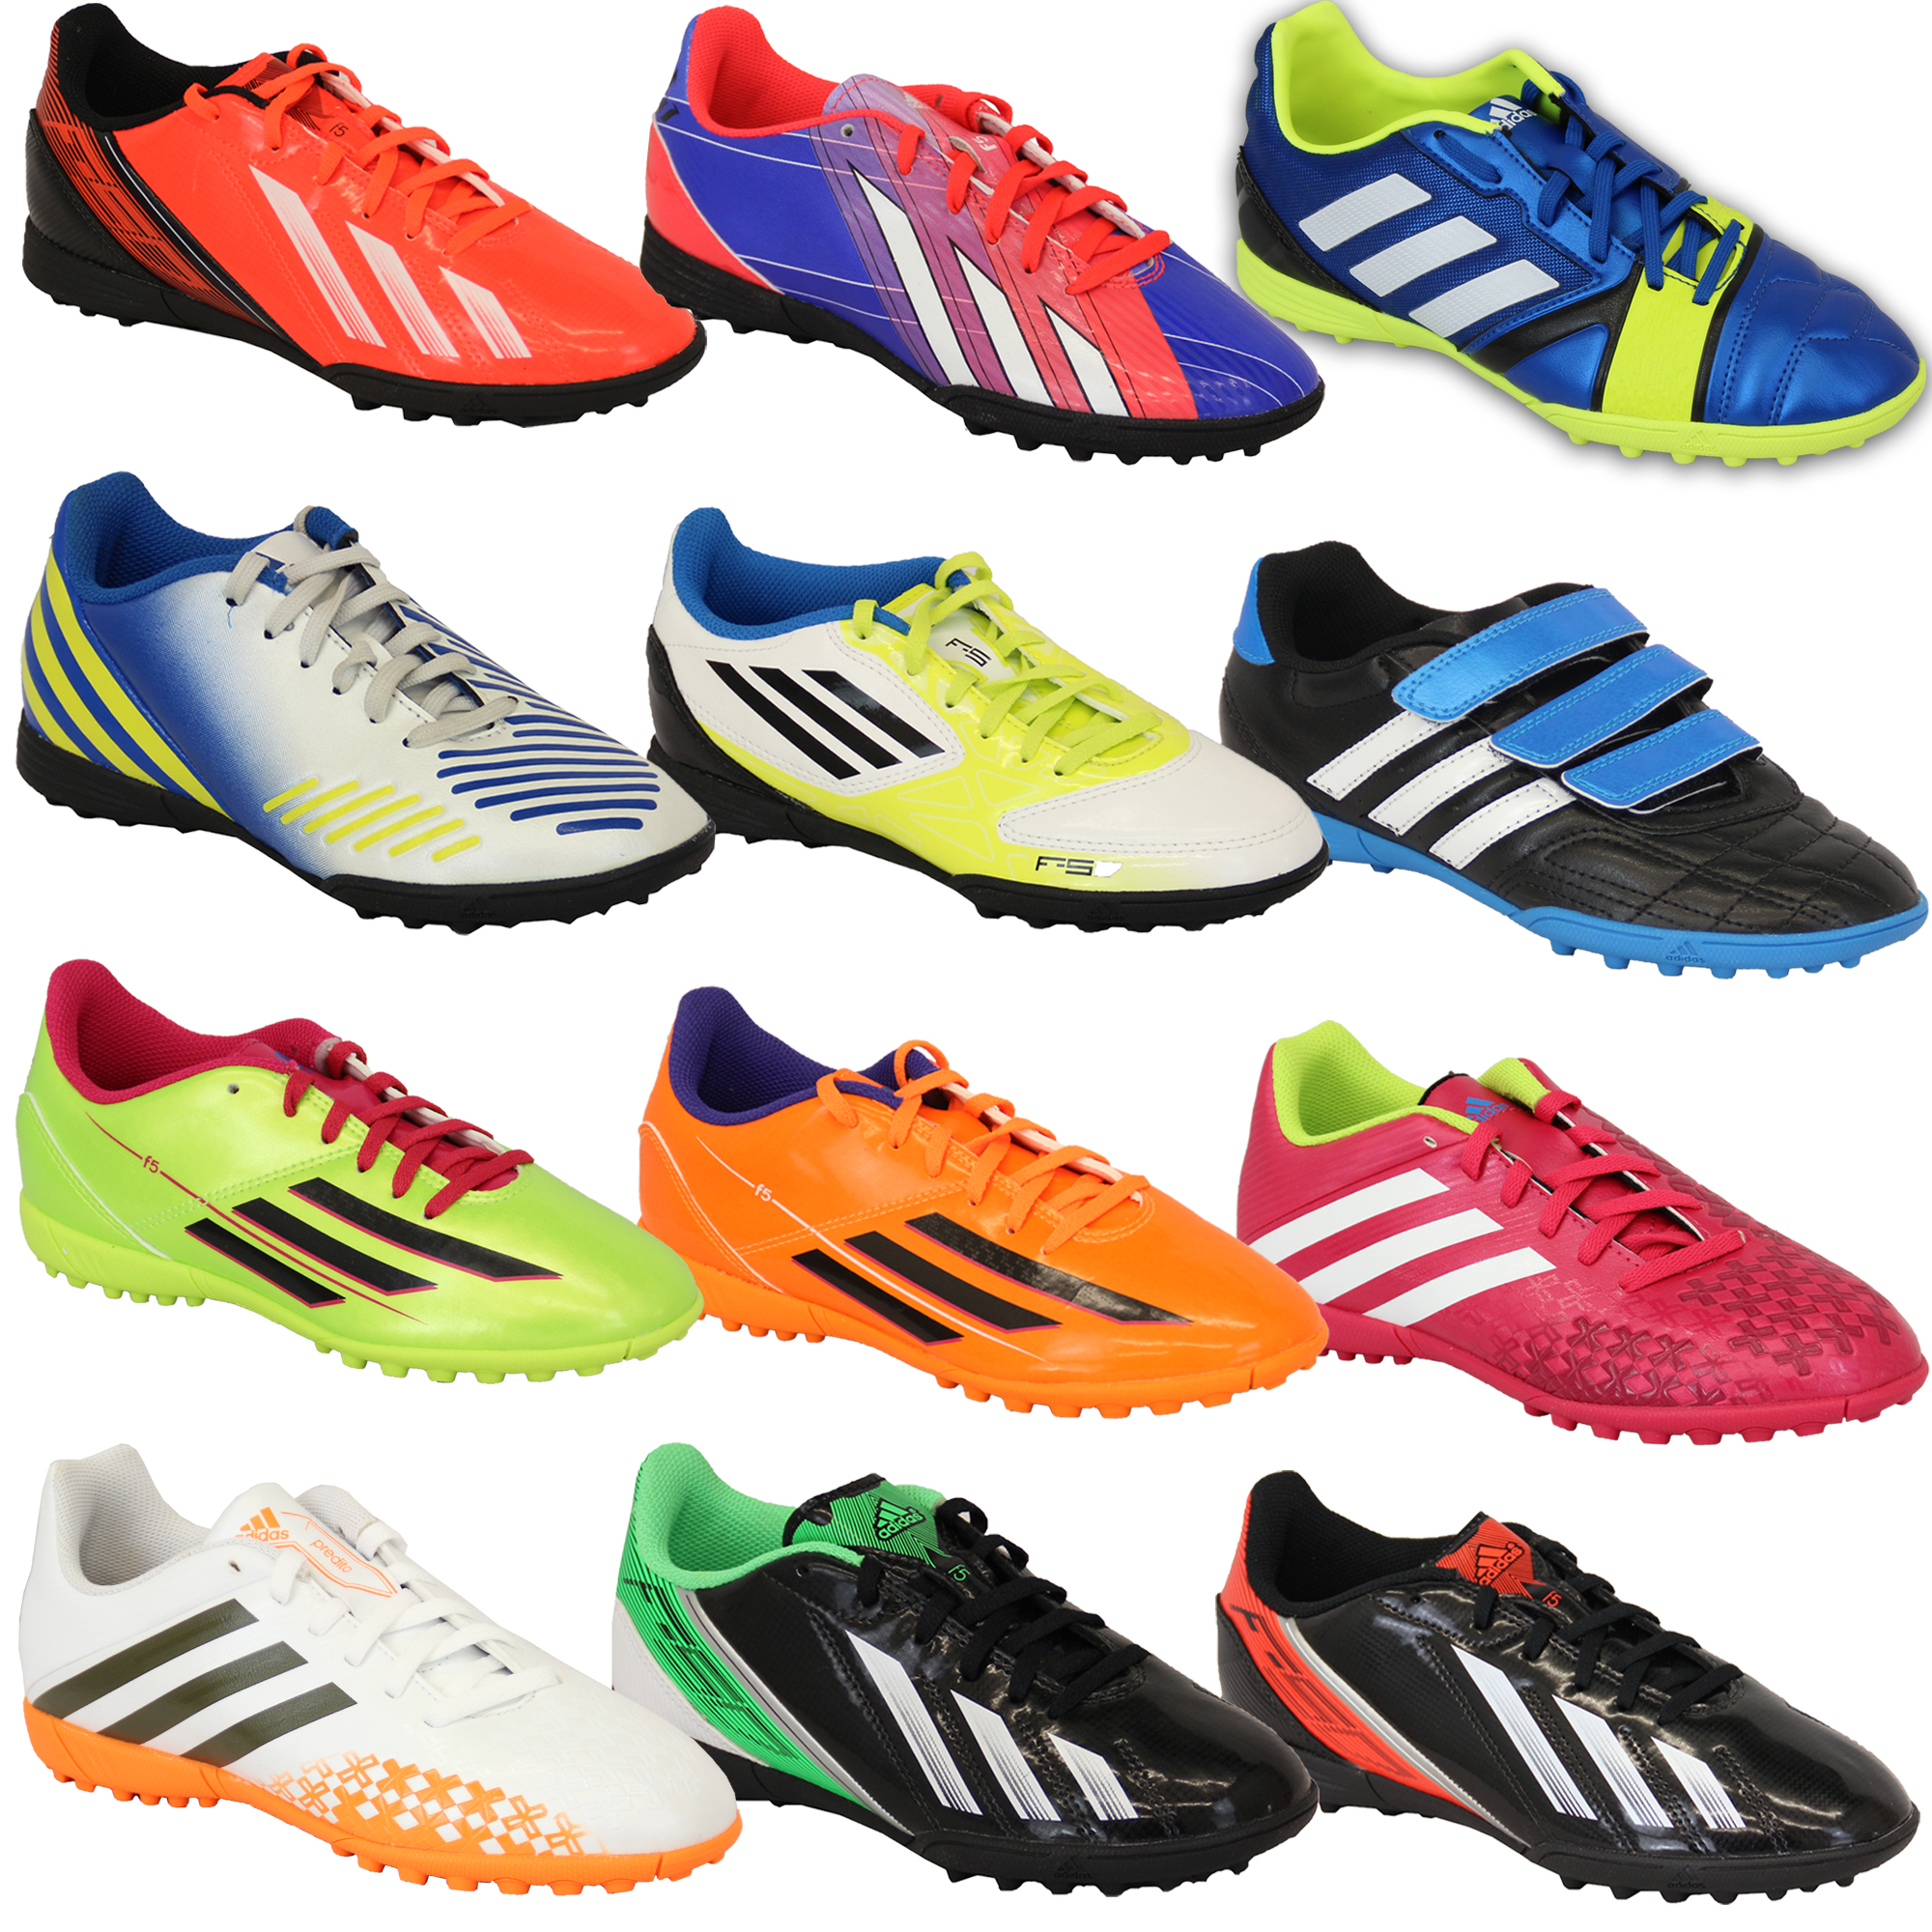 Centrar Ingenieros Gigante  Boys ADIDAS Trainers Kids Football Soccer Astro Turf Shoes Lace Up Neon  Youth | eBay